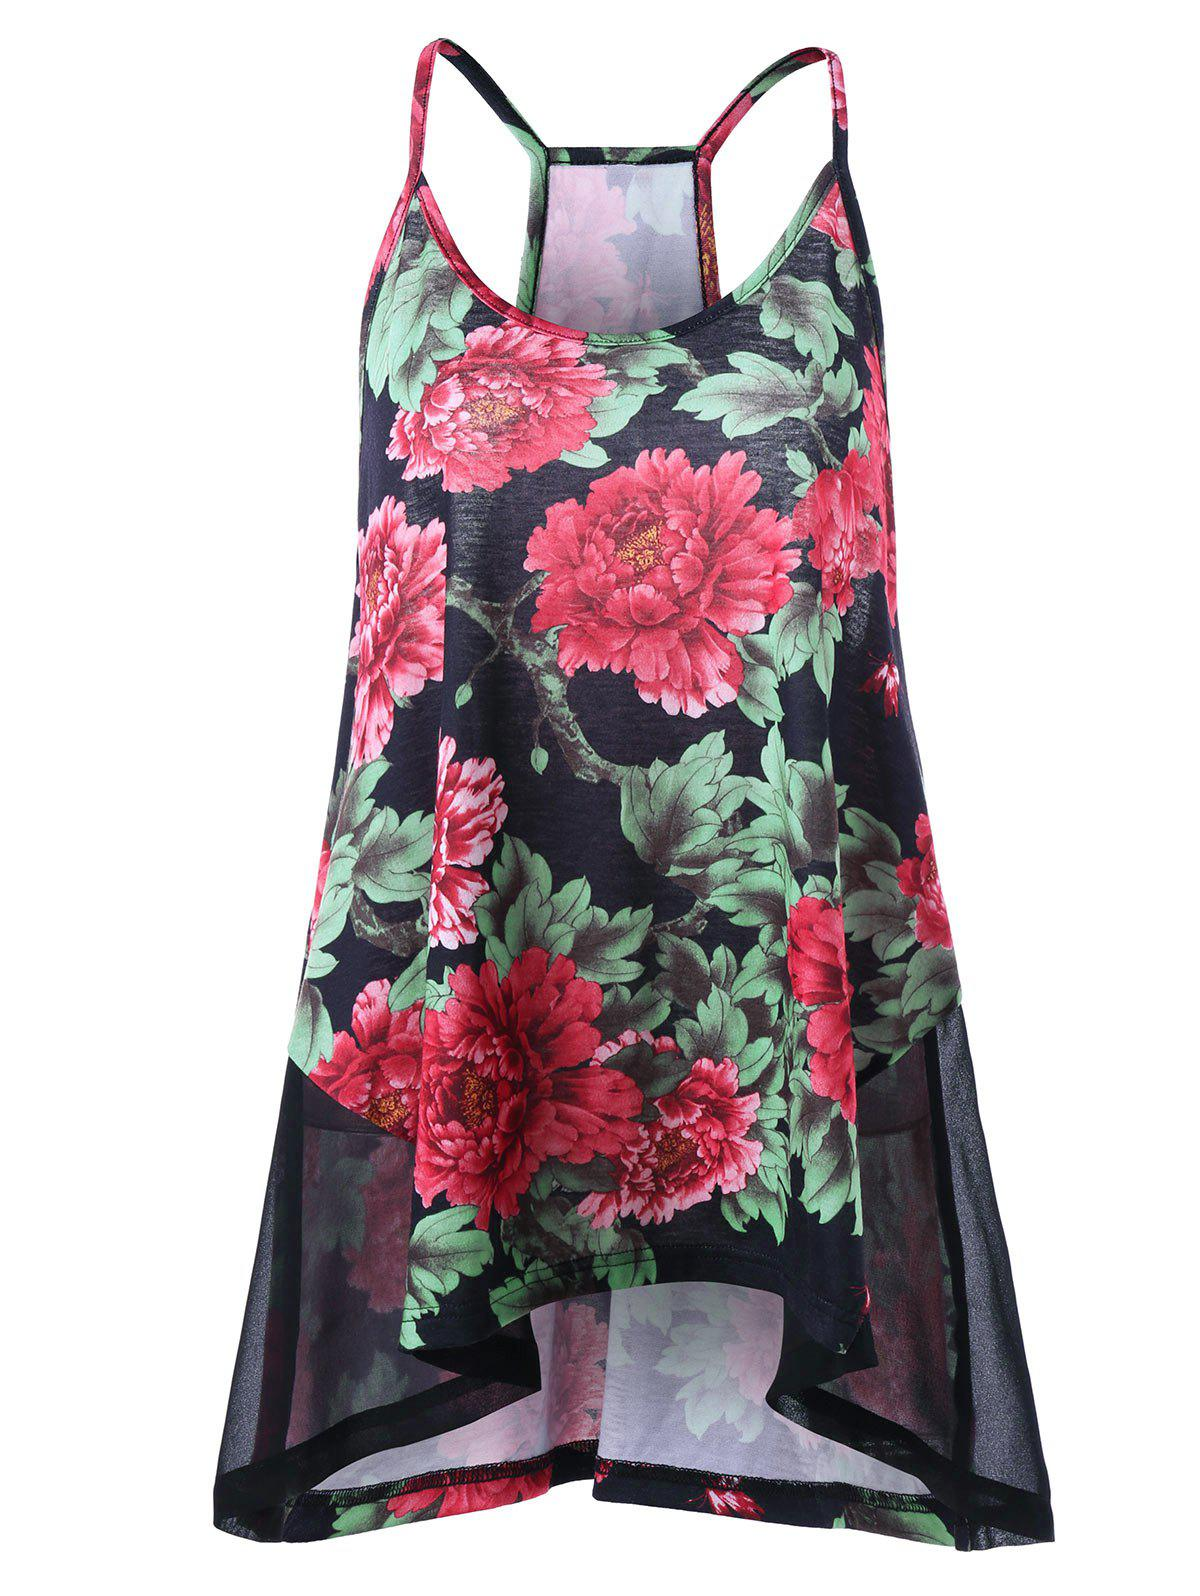 Mesh Insert Plus Size Floral Print CamisoleWOMEN<br><br>Size: 5XL; Color: COLORMIX; Material: Polyester; Shirt Length: Long; Sleeve Length: Sleeveless; Collar: Round Neck; Style: Fashion; Season: Spring,Summer; Pattern Type: Floral; Weight: 0.1980kg; Package Contents: 1 x Camisole;